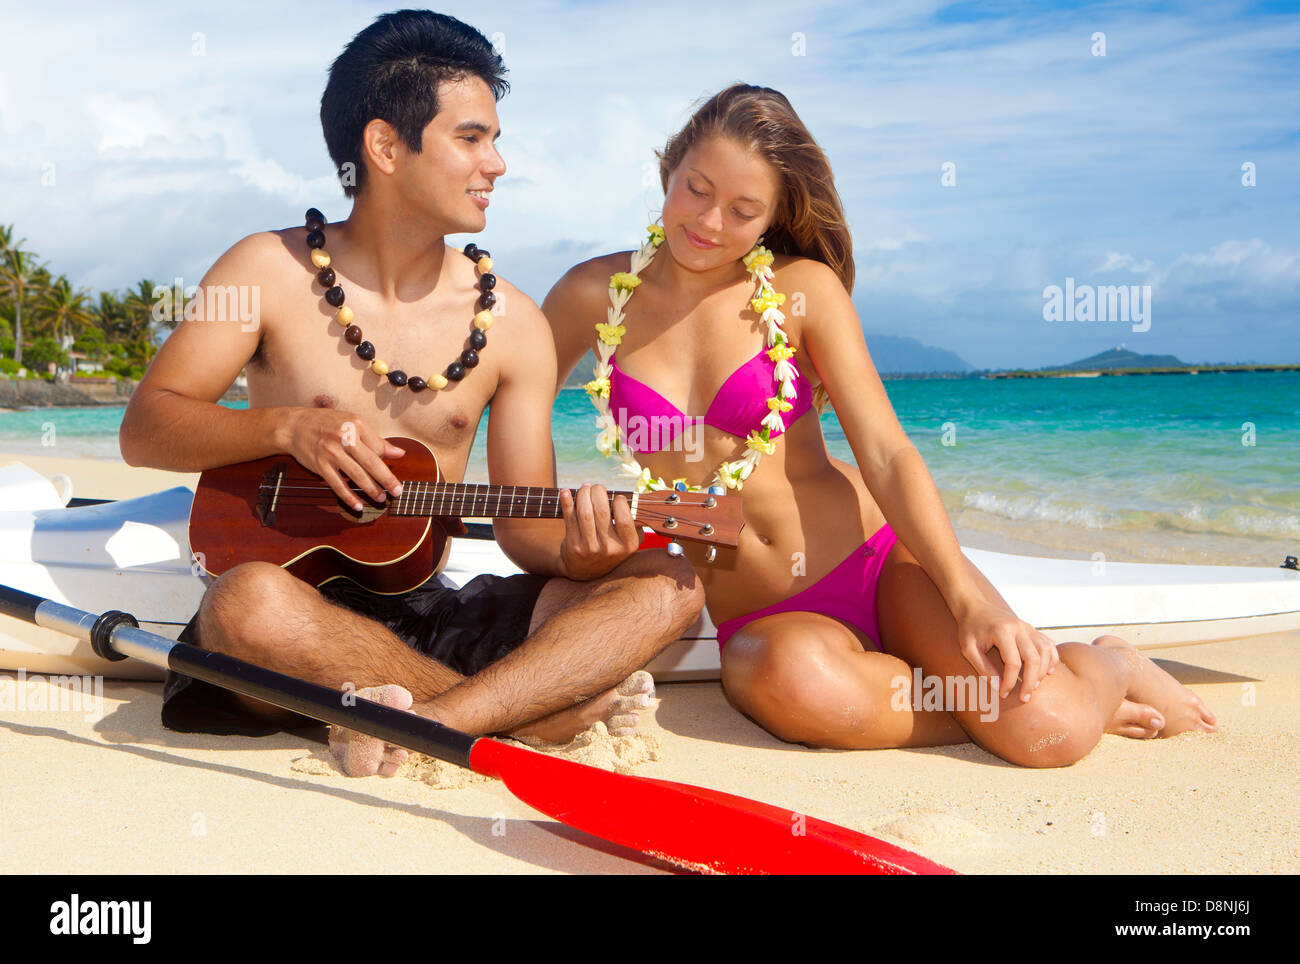 couple on the beach with their surf skis playing ukulele - Stock Image